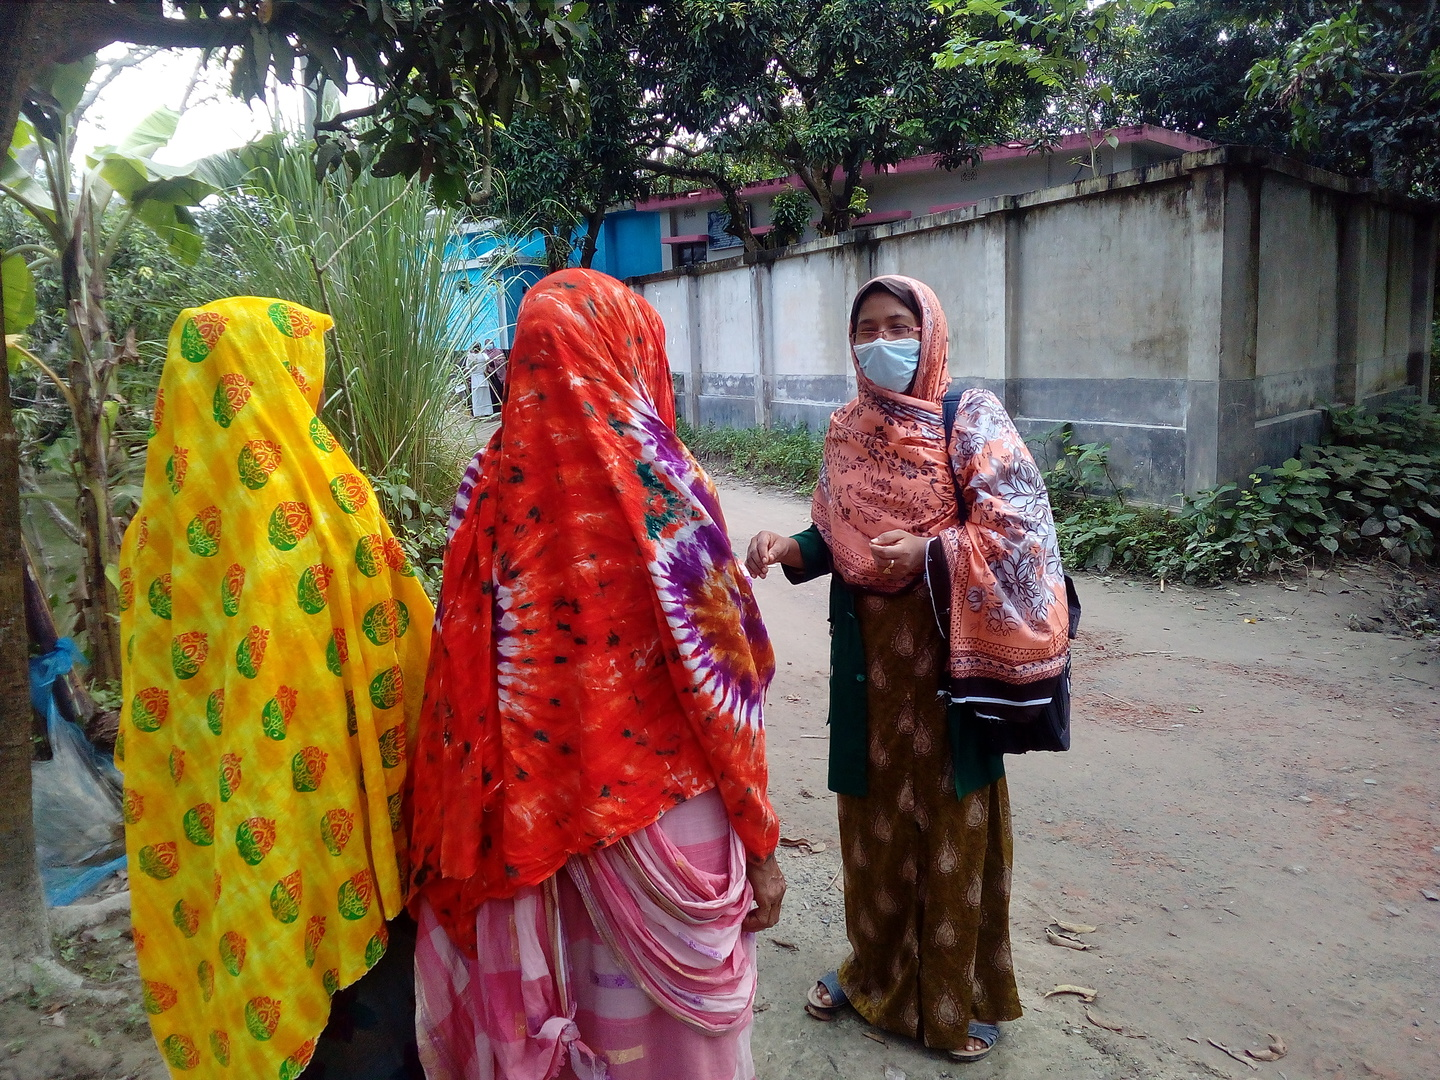 A woman in a medical mask speaks to two women on the street.